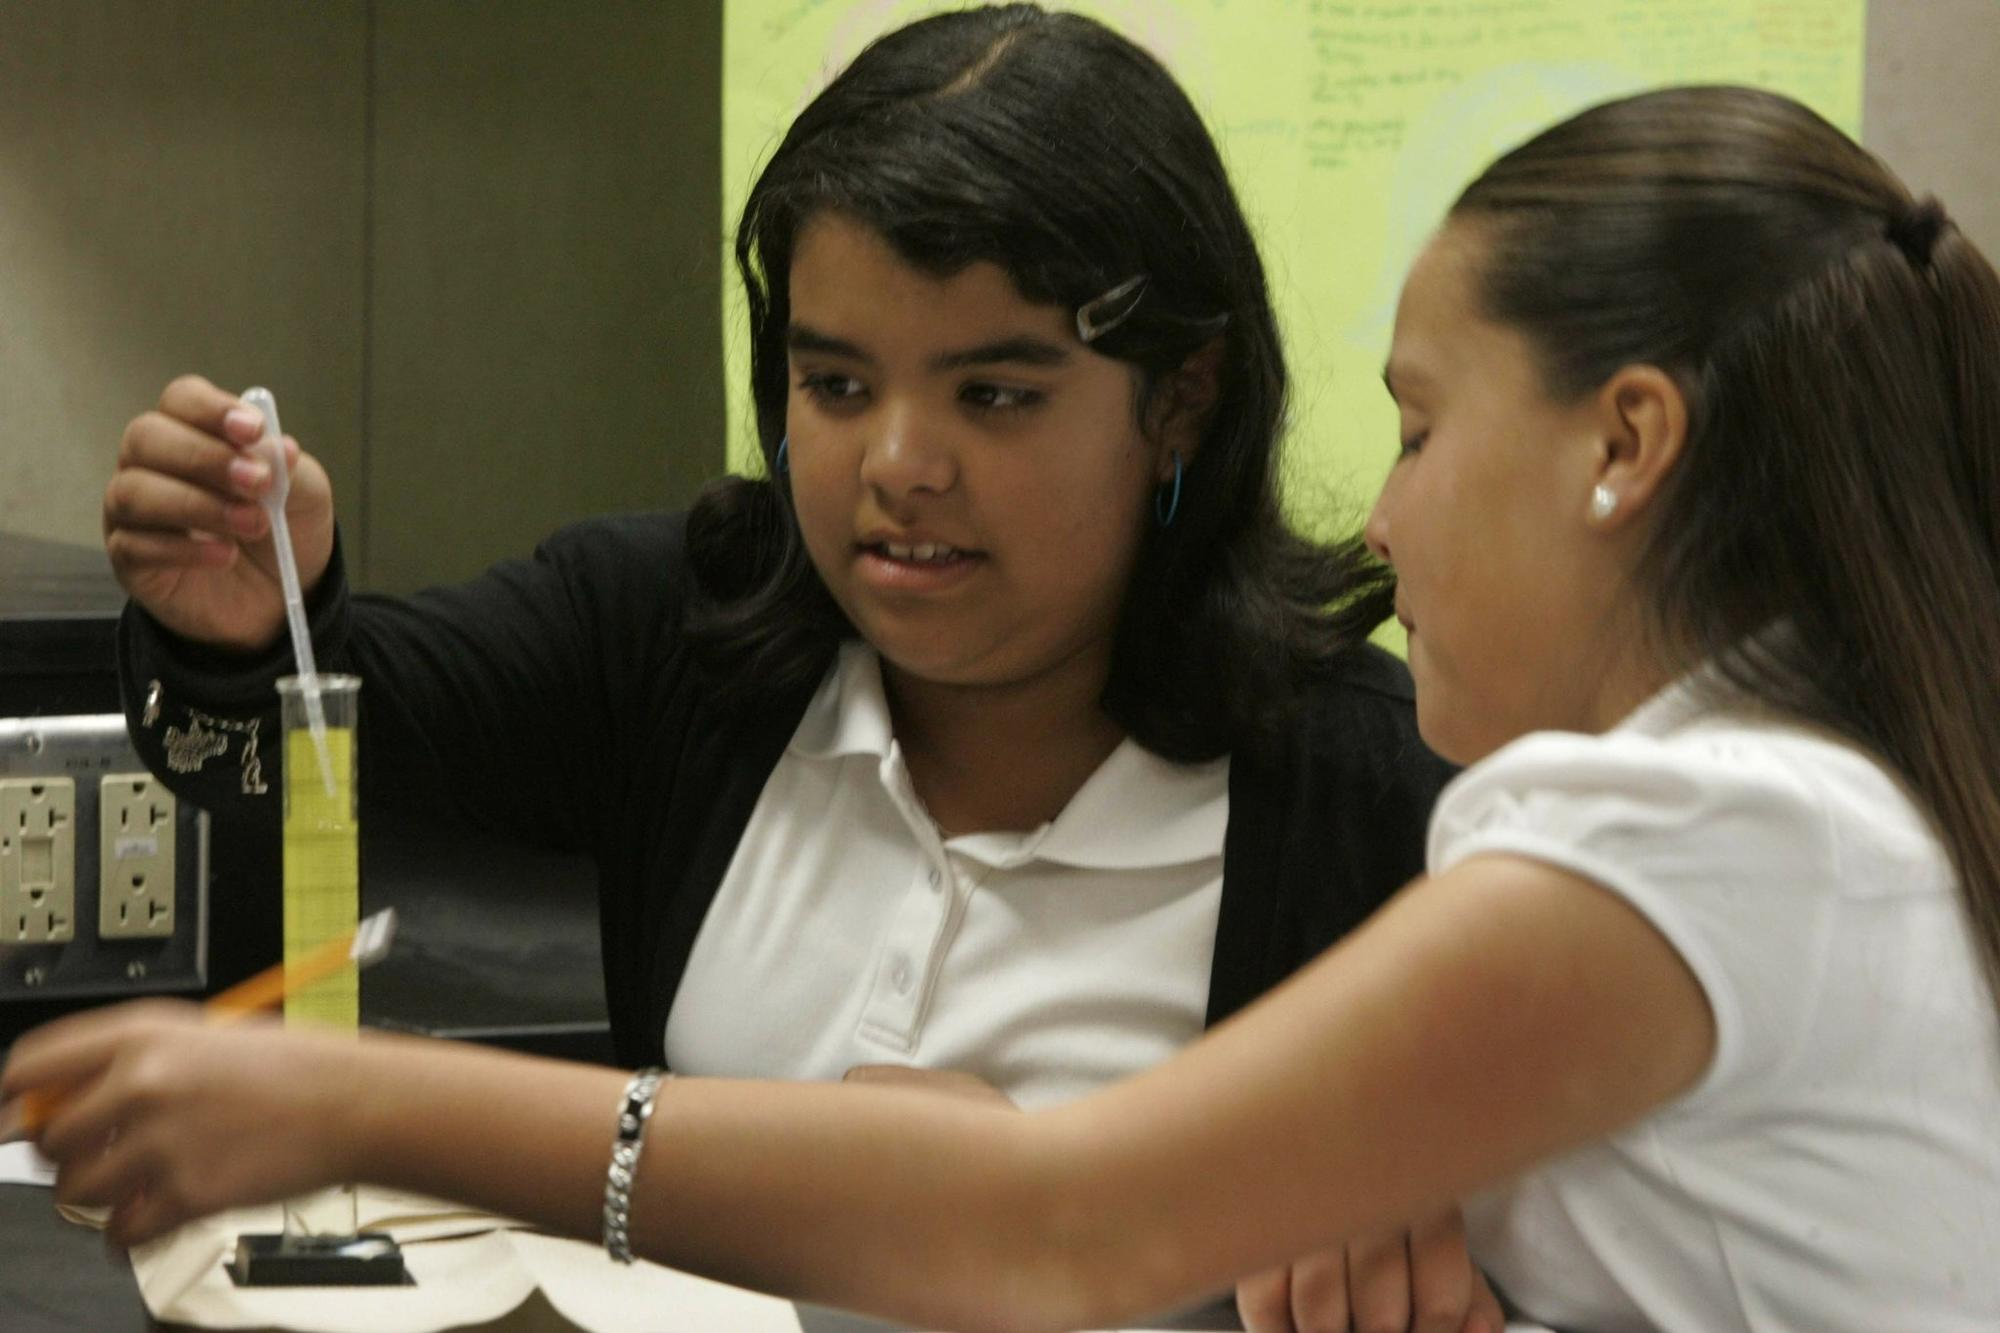 """Lorriana Mendez and Vivian Ortiz worked in science class at Castle Park Middle School. In the spring, 50 percent of the school's eighth-graders were rated """"proficient&#8221"""